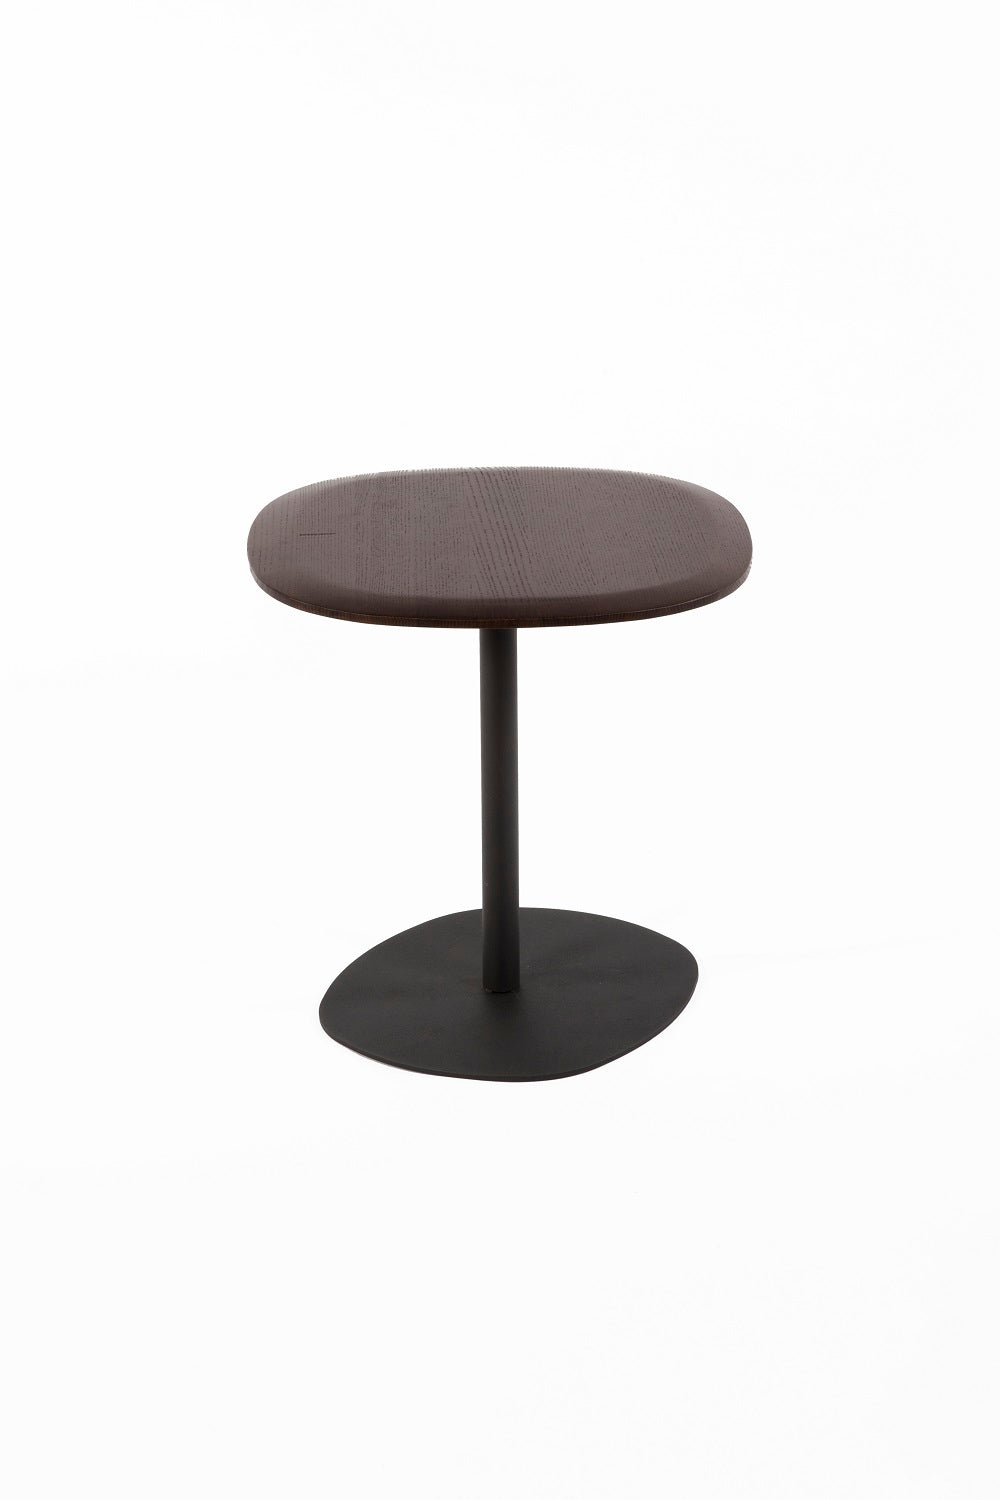 The Grau Side Table